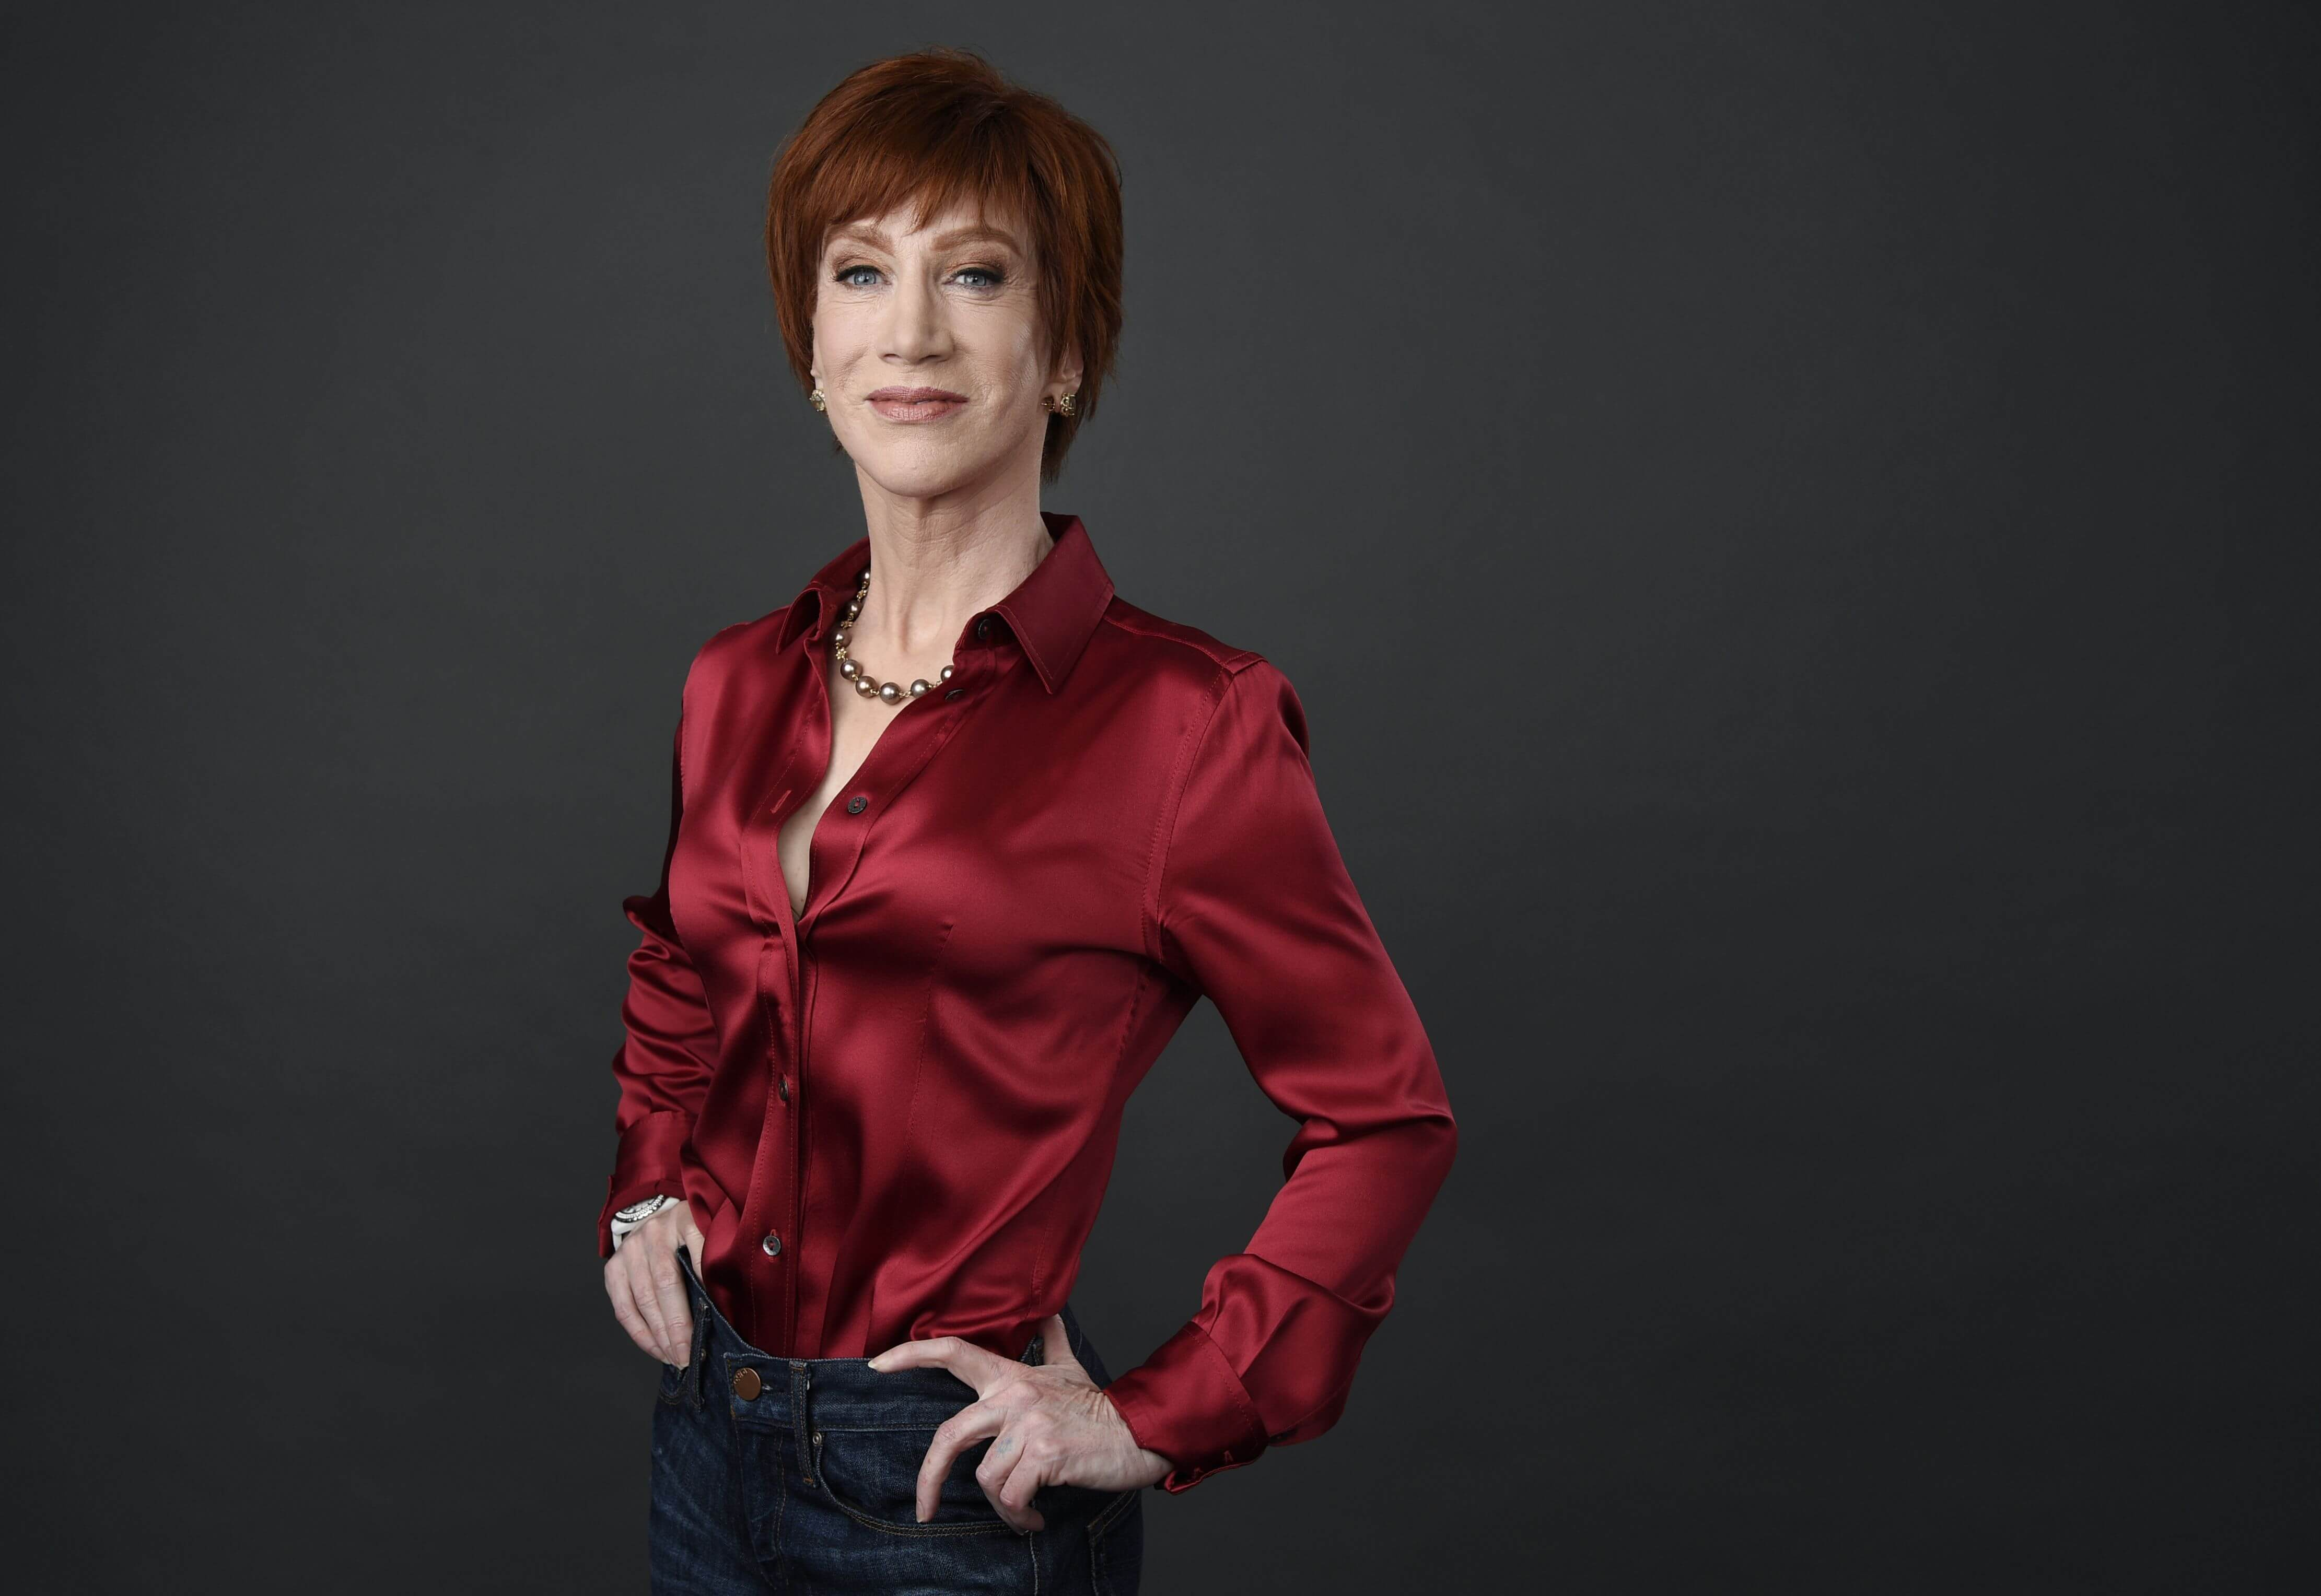 Kathy Griffin sexy red shirt